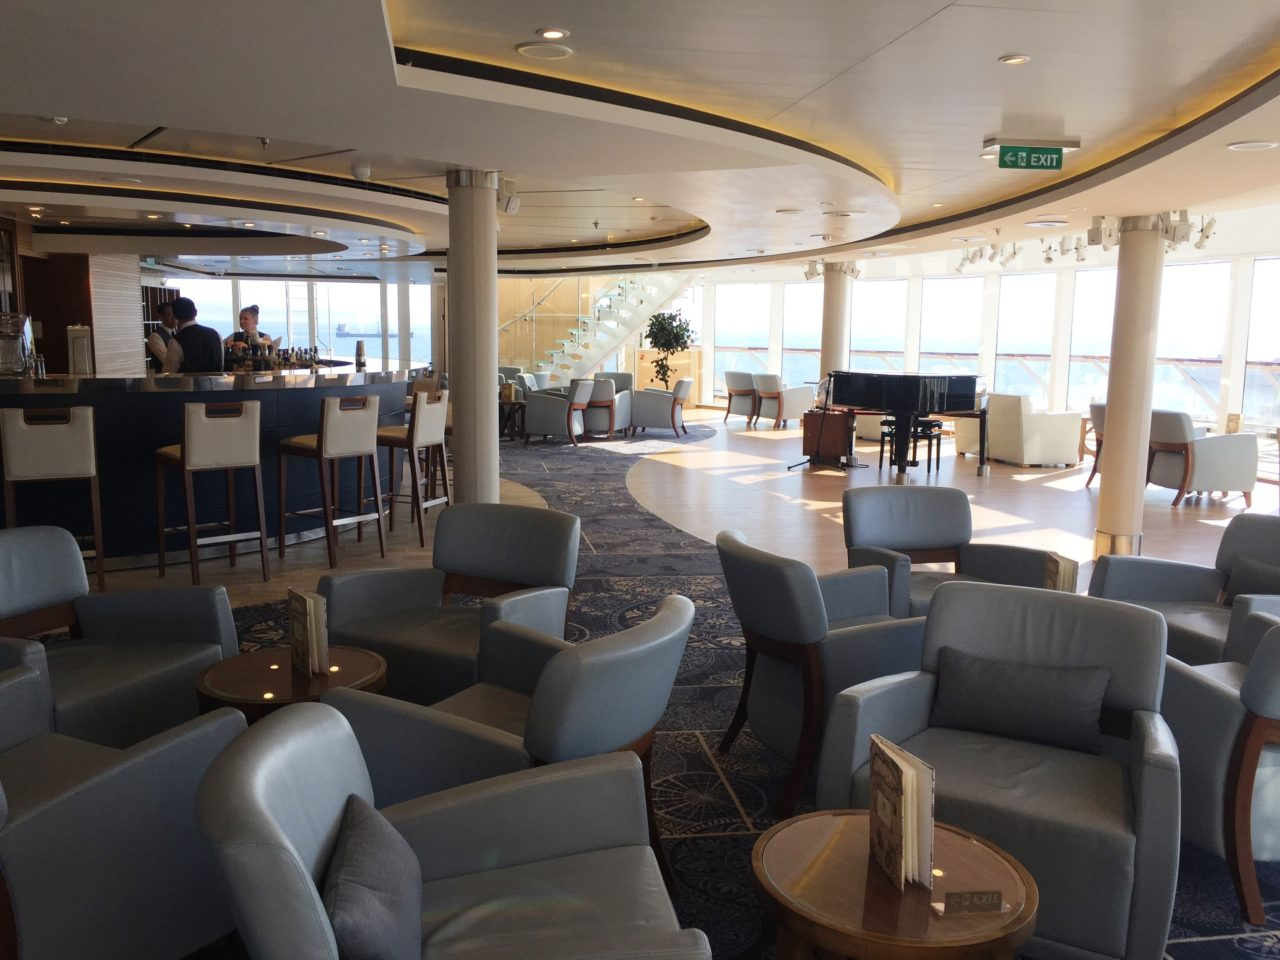 <em><strong>Viking Ocean Cruise Ships ~</strong> </em> Explorer's Lounge on the <em><strong>Viking Star</strong></em>